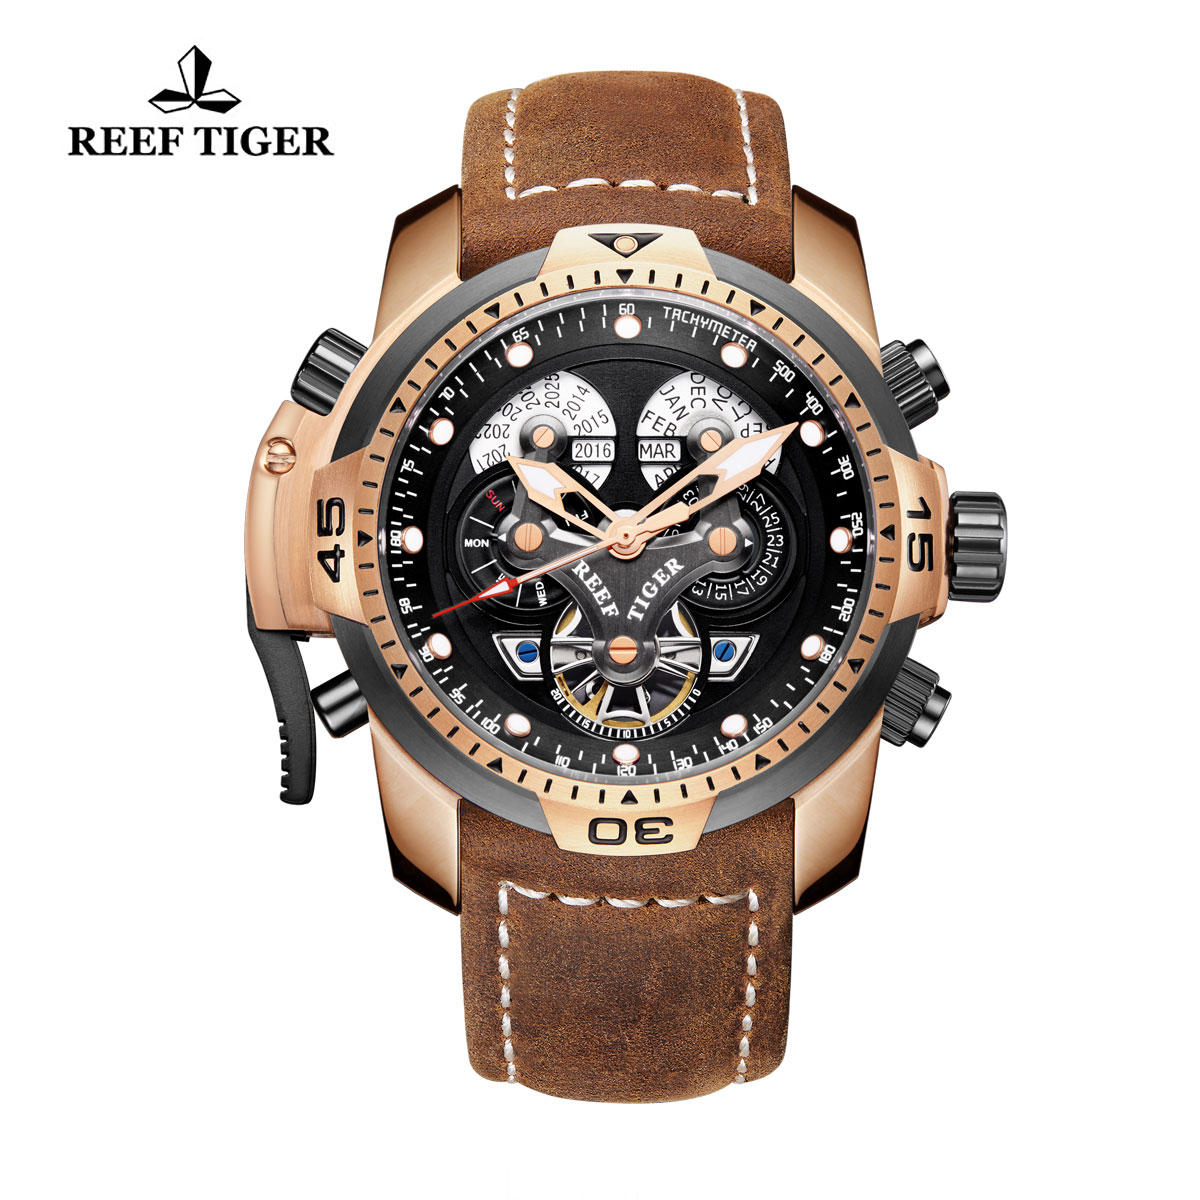 Reef Tiger Concept Sport Watches Automatic Watch Rose Gold Case Brown Leather RGA3503-PBSB